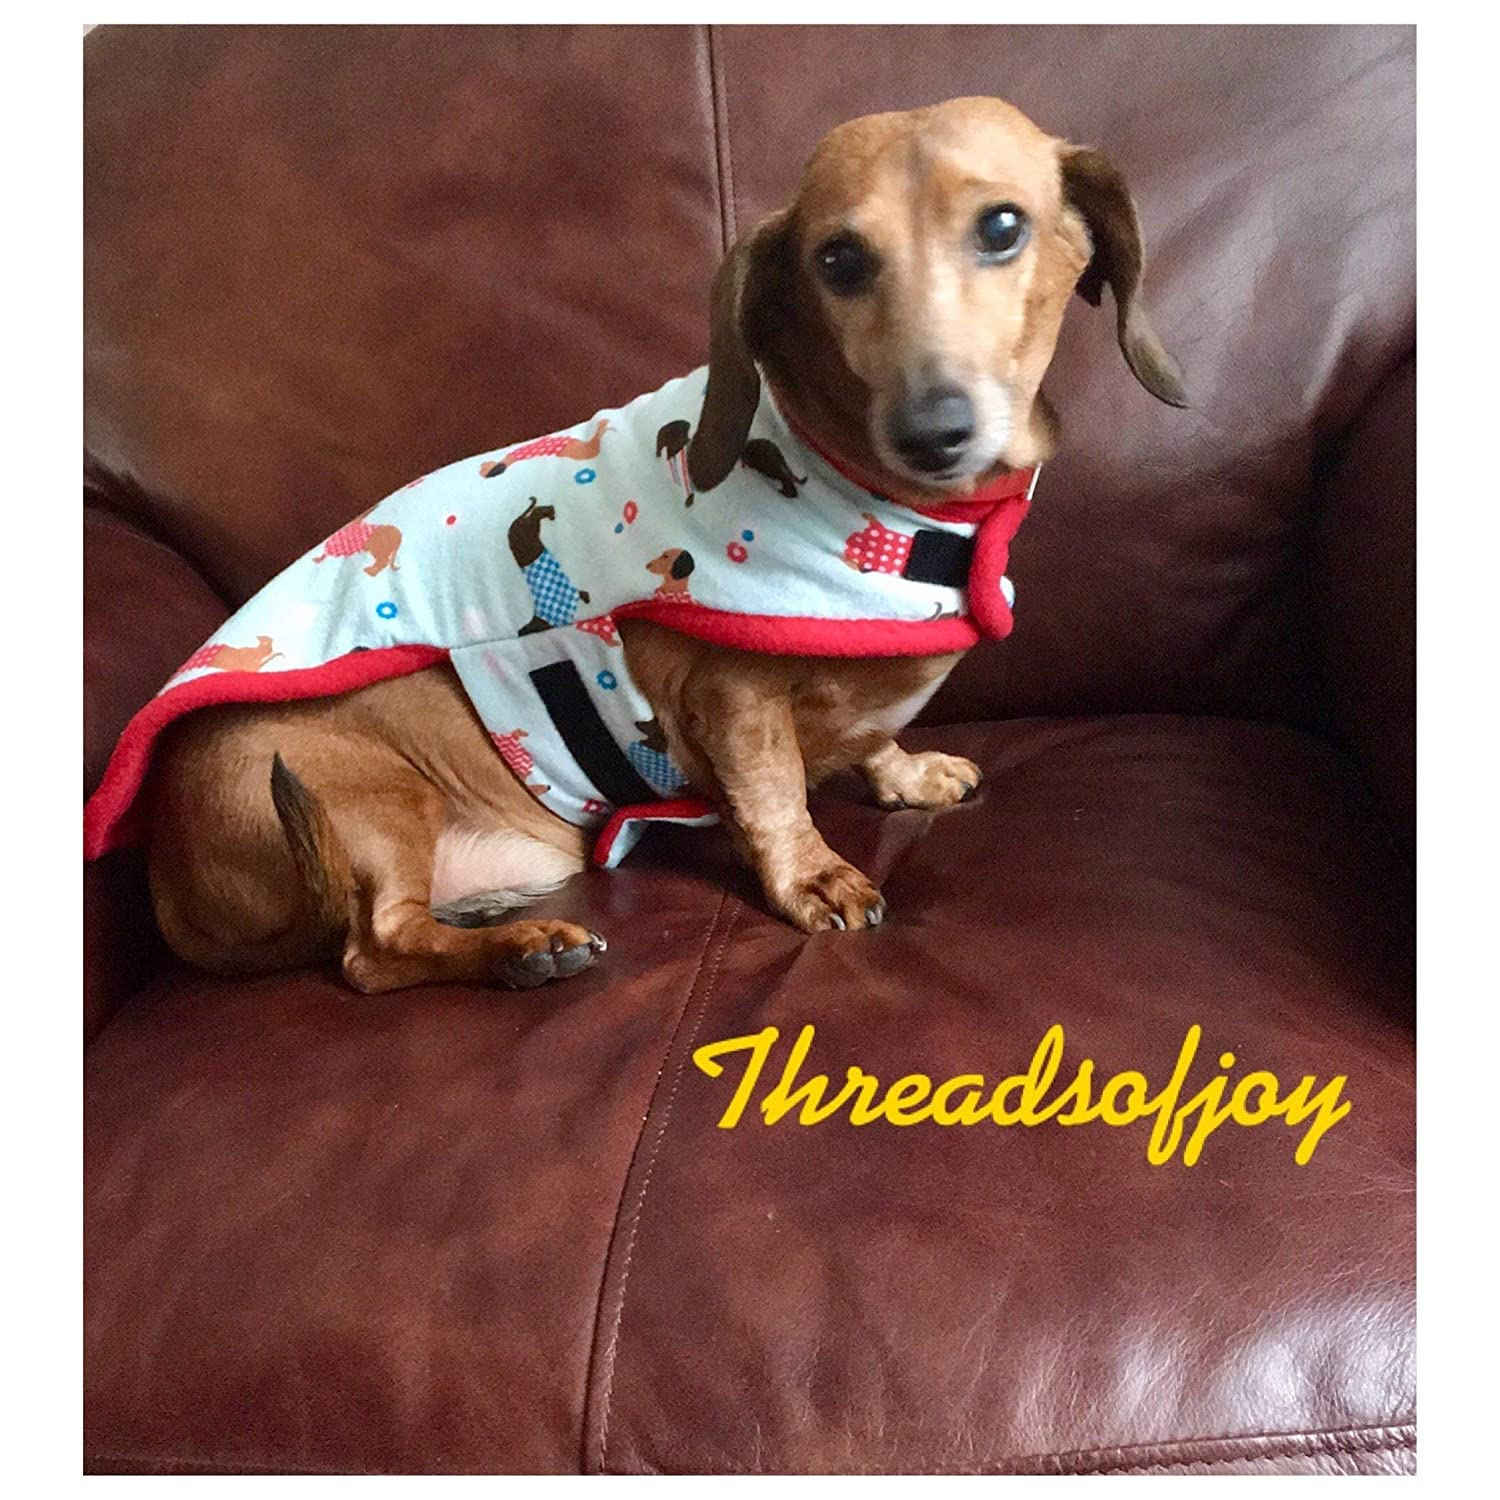 Pet Supplies Pet Accessories Dachshund Dog Coat Small Dog Clothing Dachshund Gifts Dachshund Sweater